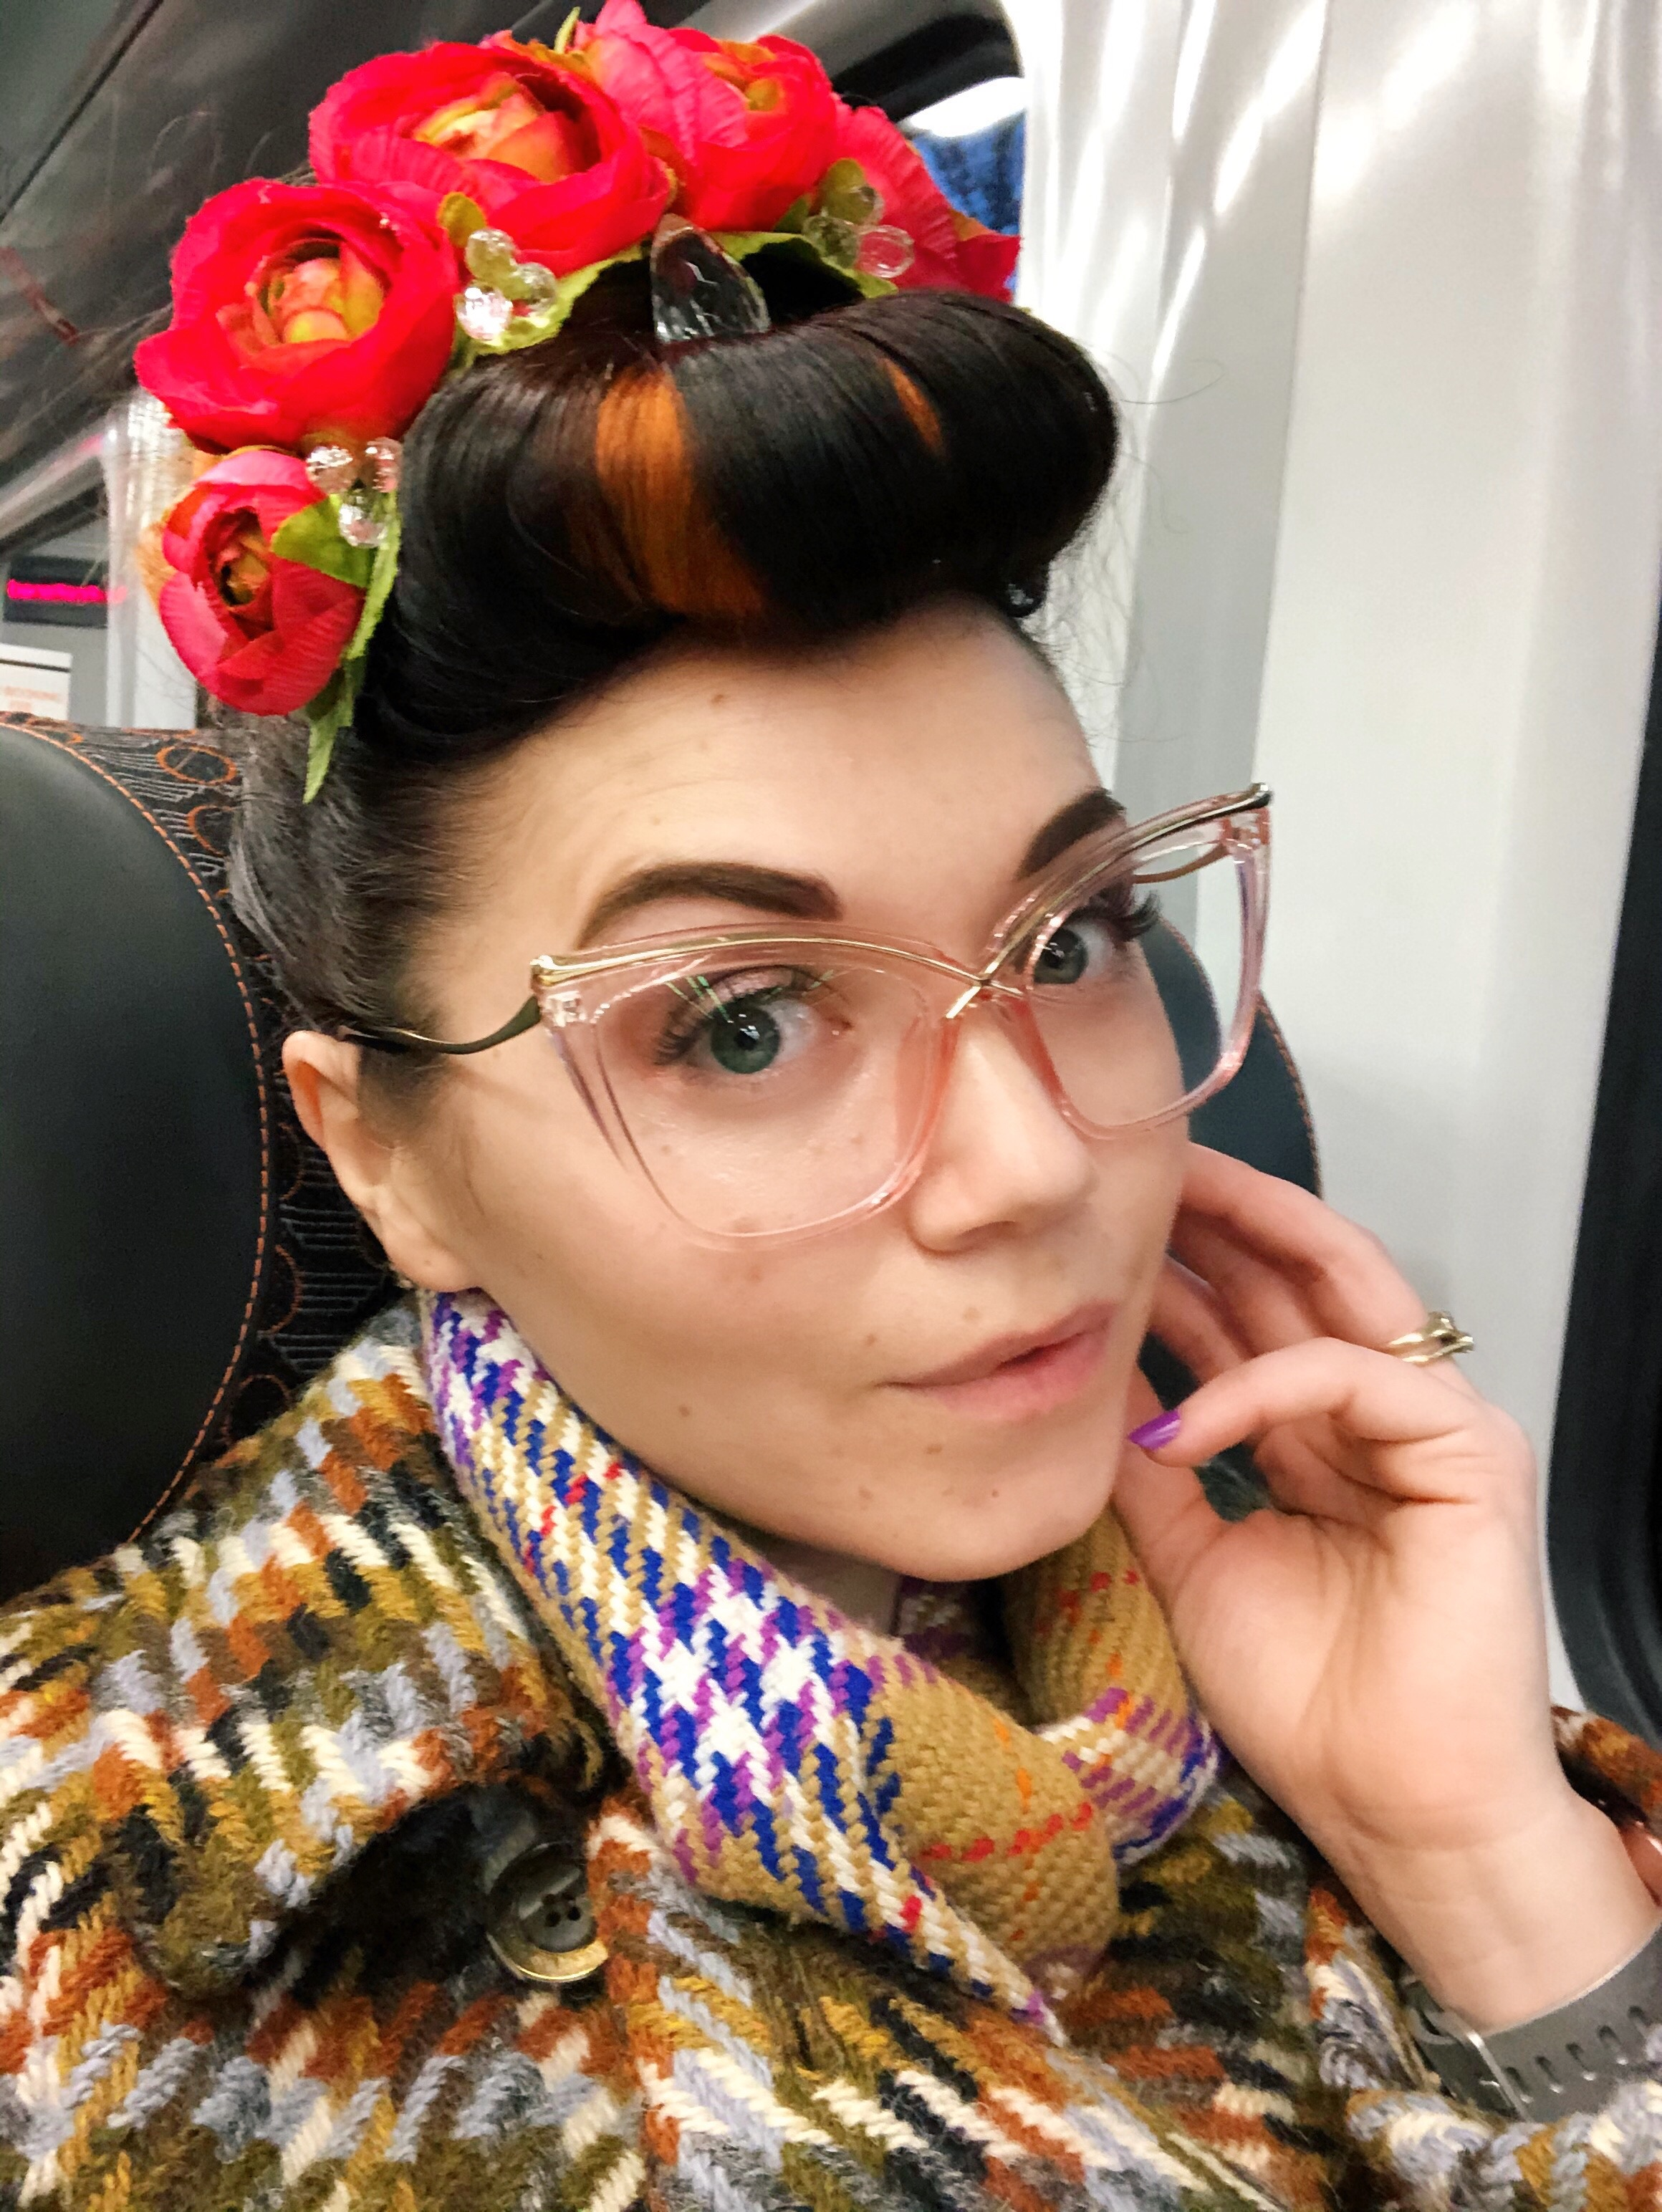 Pin it up - a flower crown in your hair